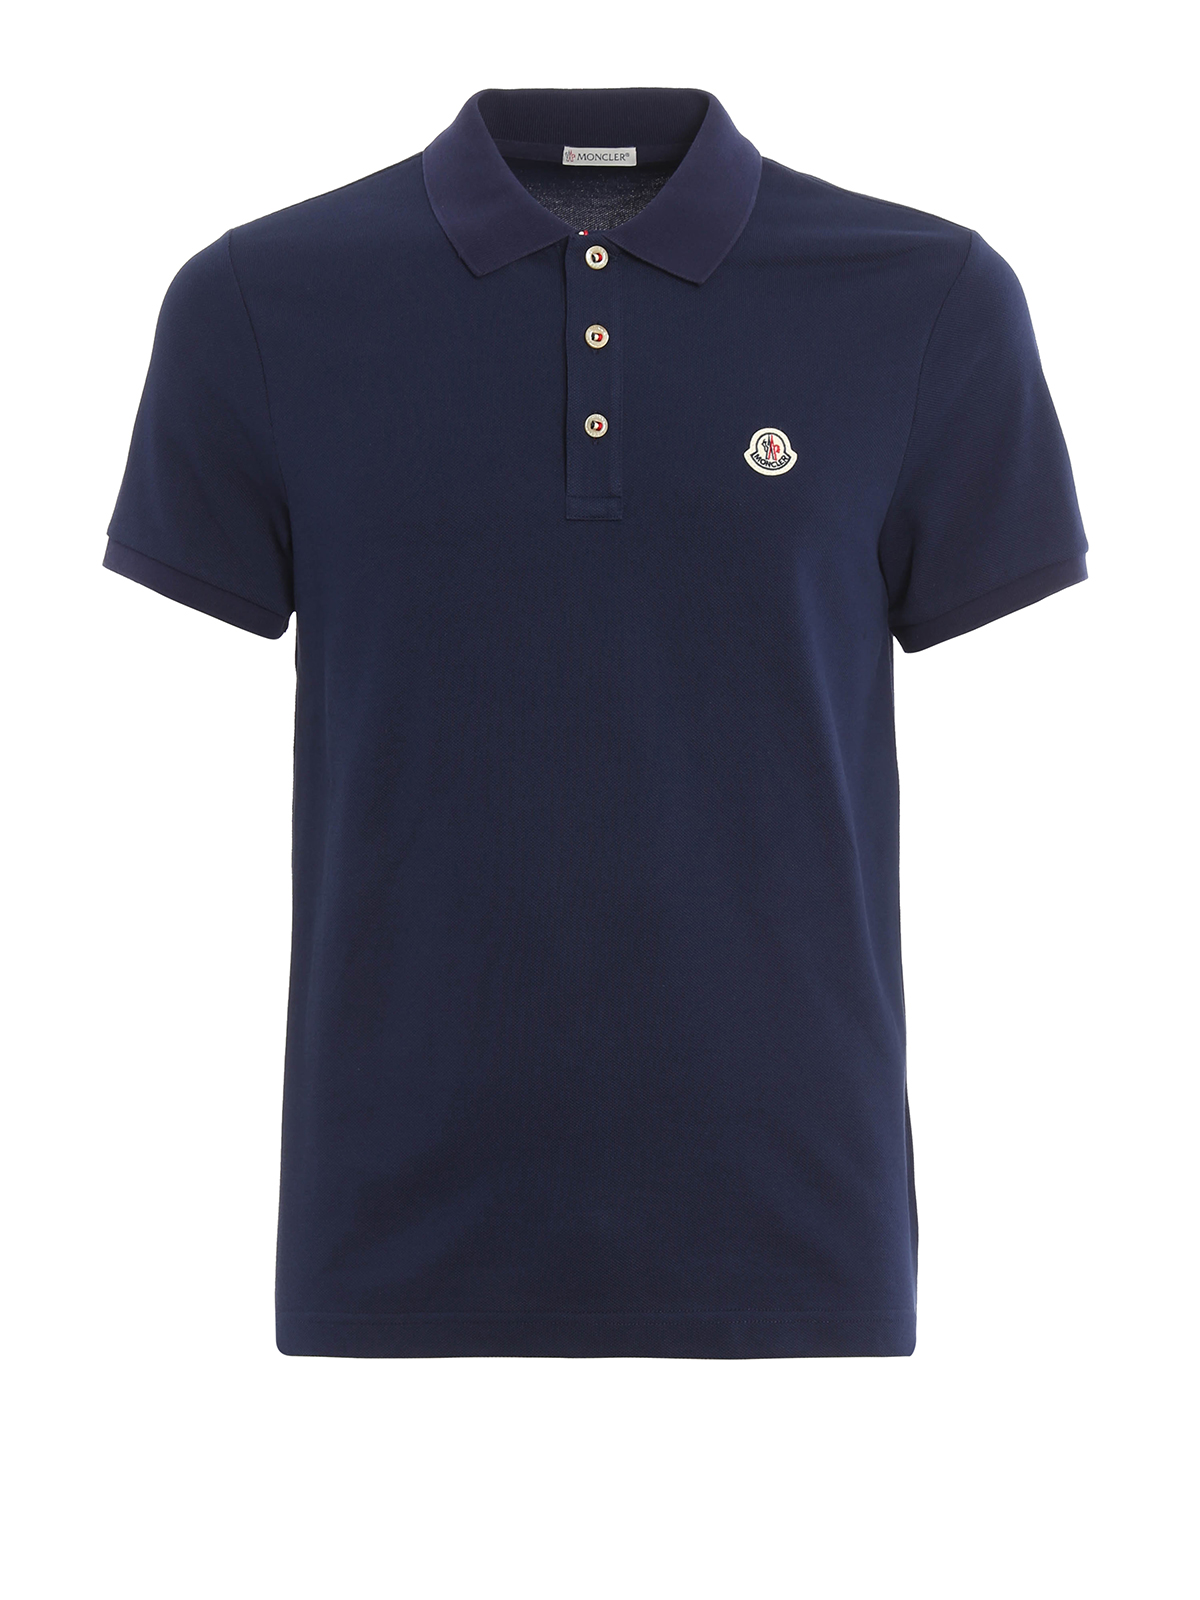 plain cotton pique polo shirt by moncler polo shirts ikrix. Black Bedroom Furniture Sets. Home Design Ideas